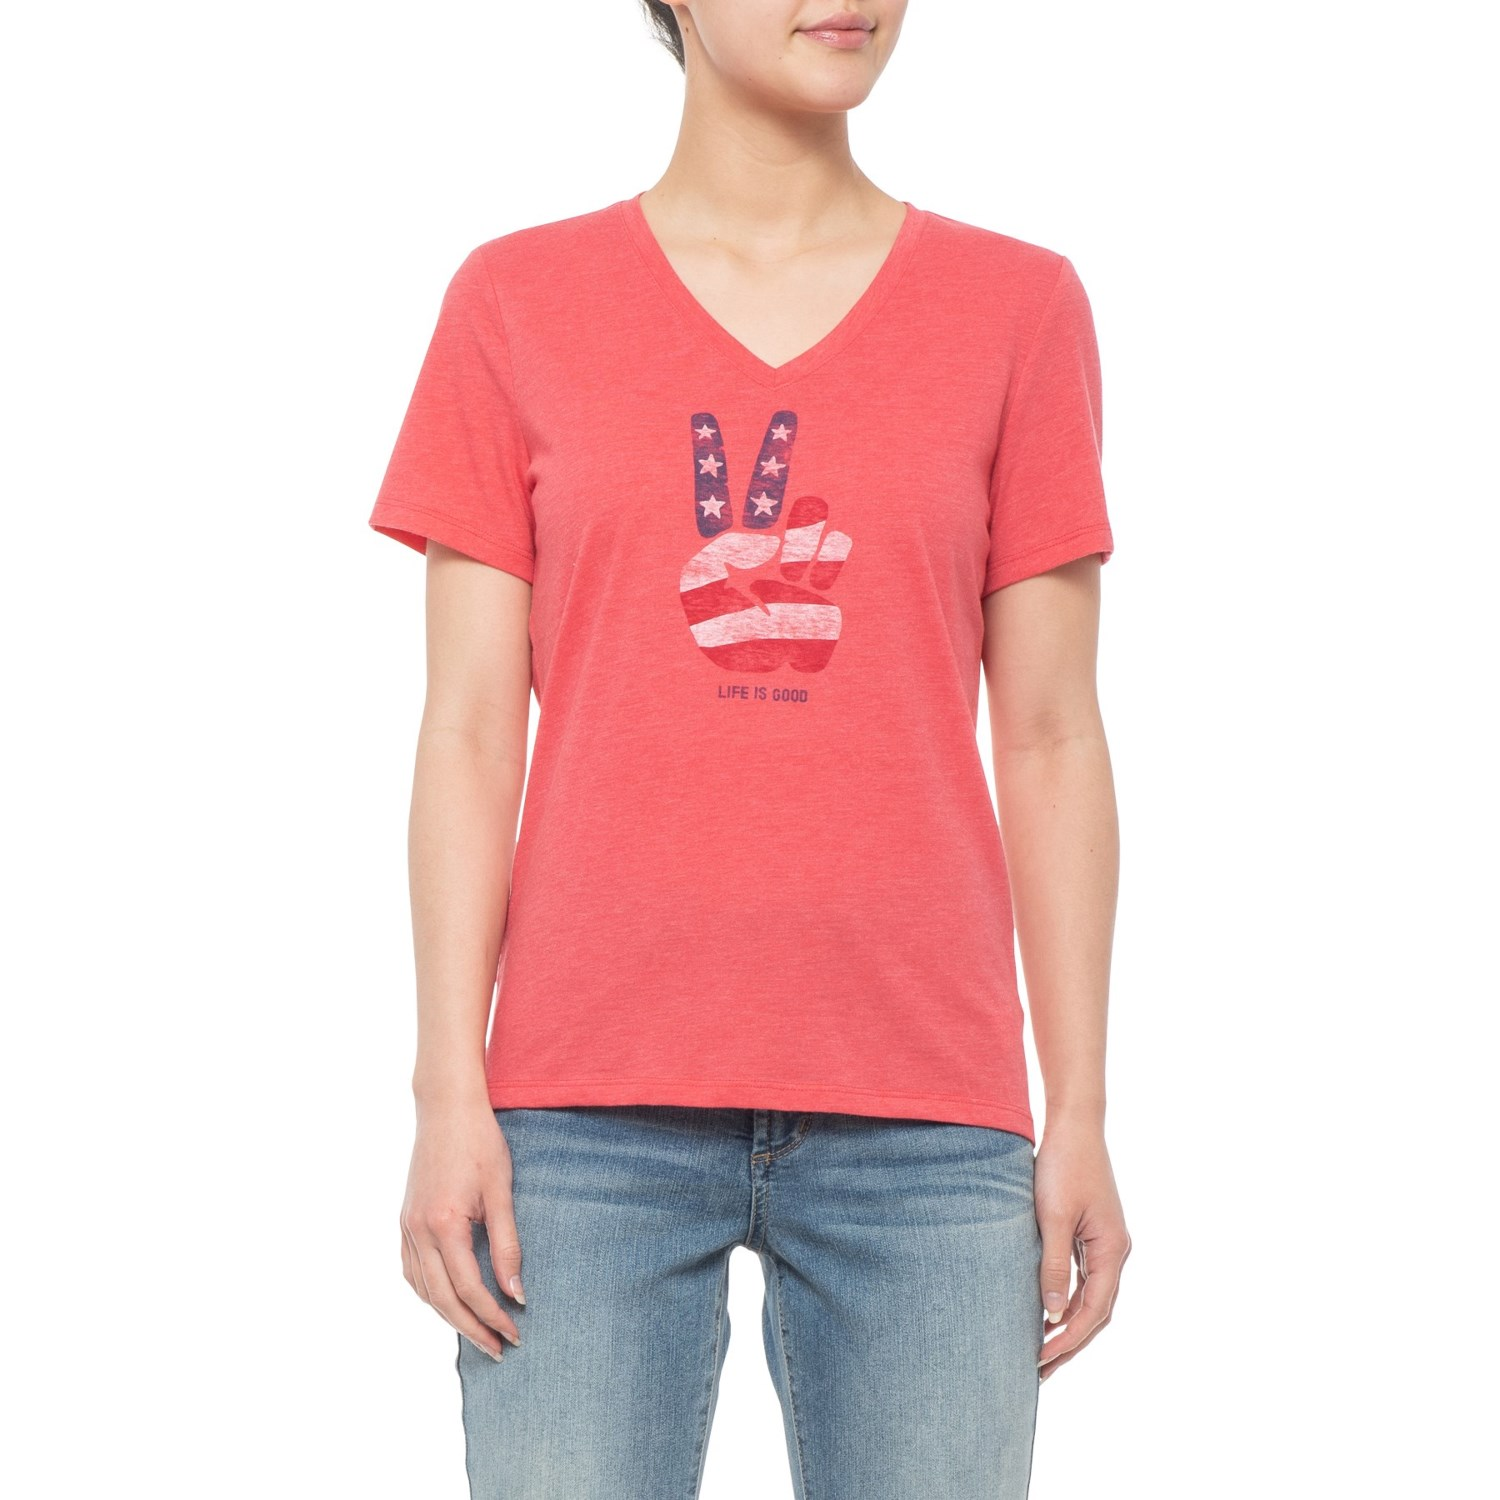 4948d630f88a8 Life is good® Peace Stars and Stripes Classic T-Shirt - V-Neck, Short  Sleeve (For Women)